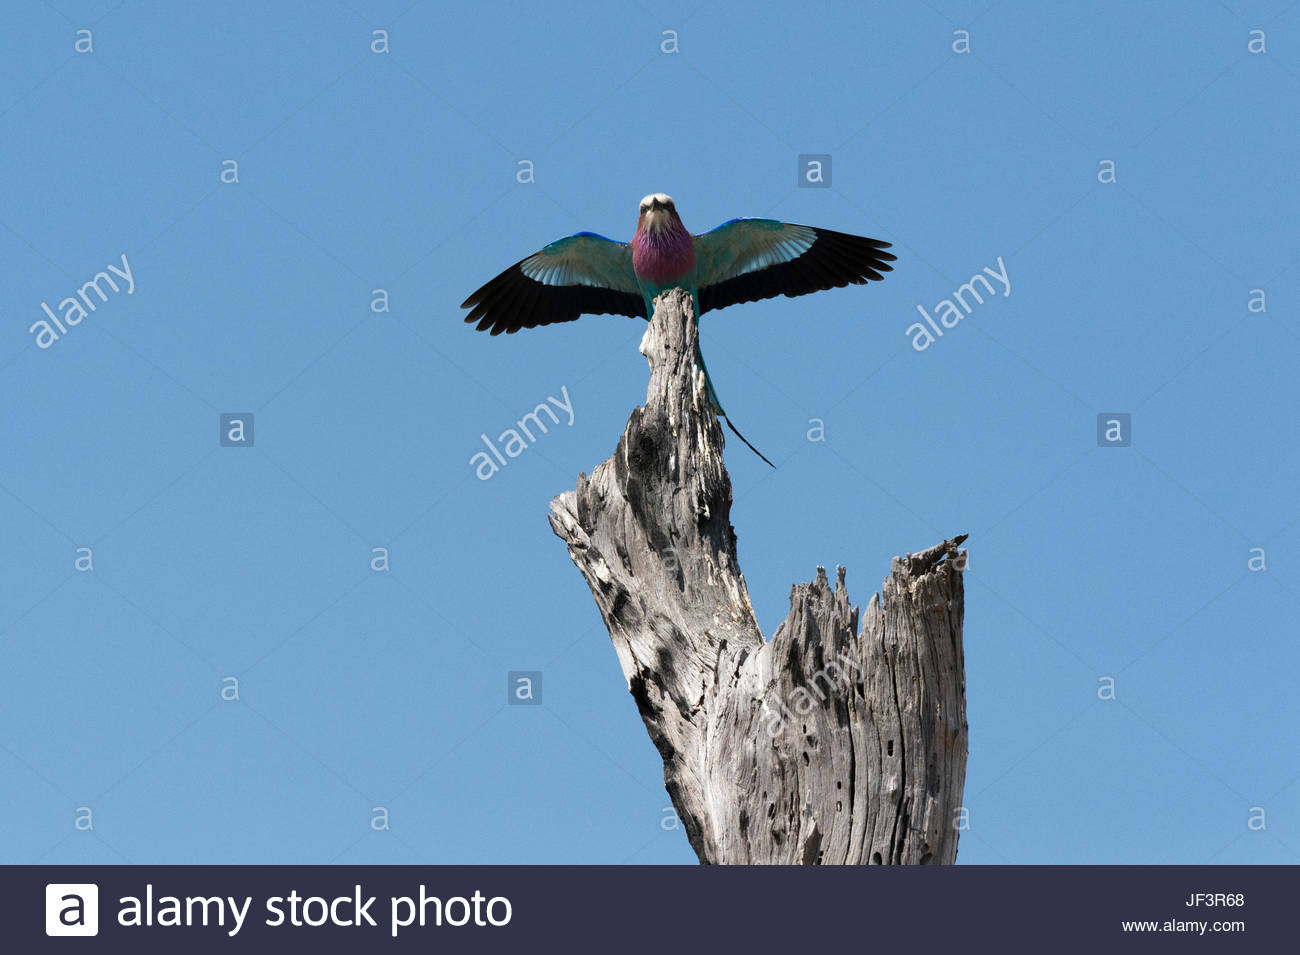 A lilac-breasted roller, Coracias caudatus, landing on an old tree snag. Stock Photo